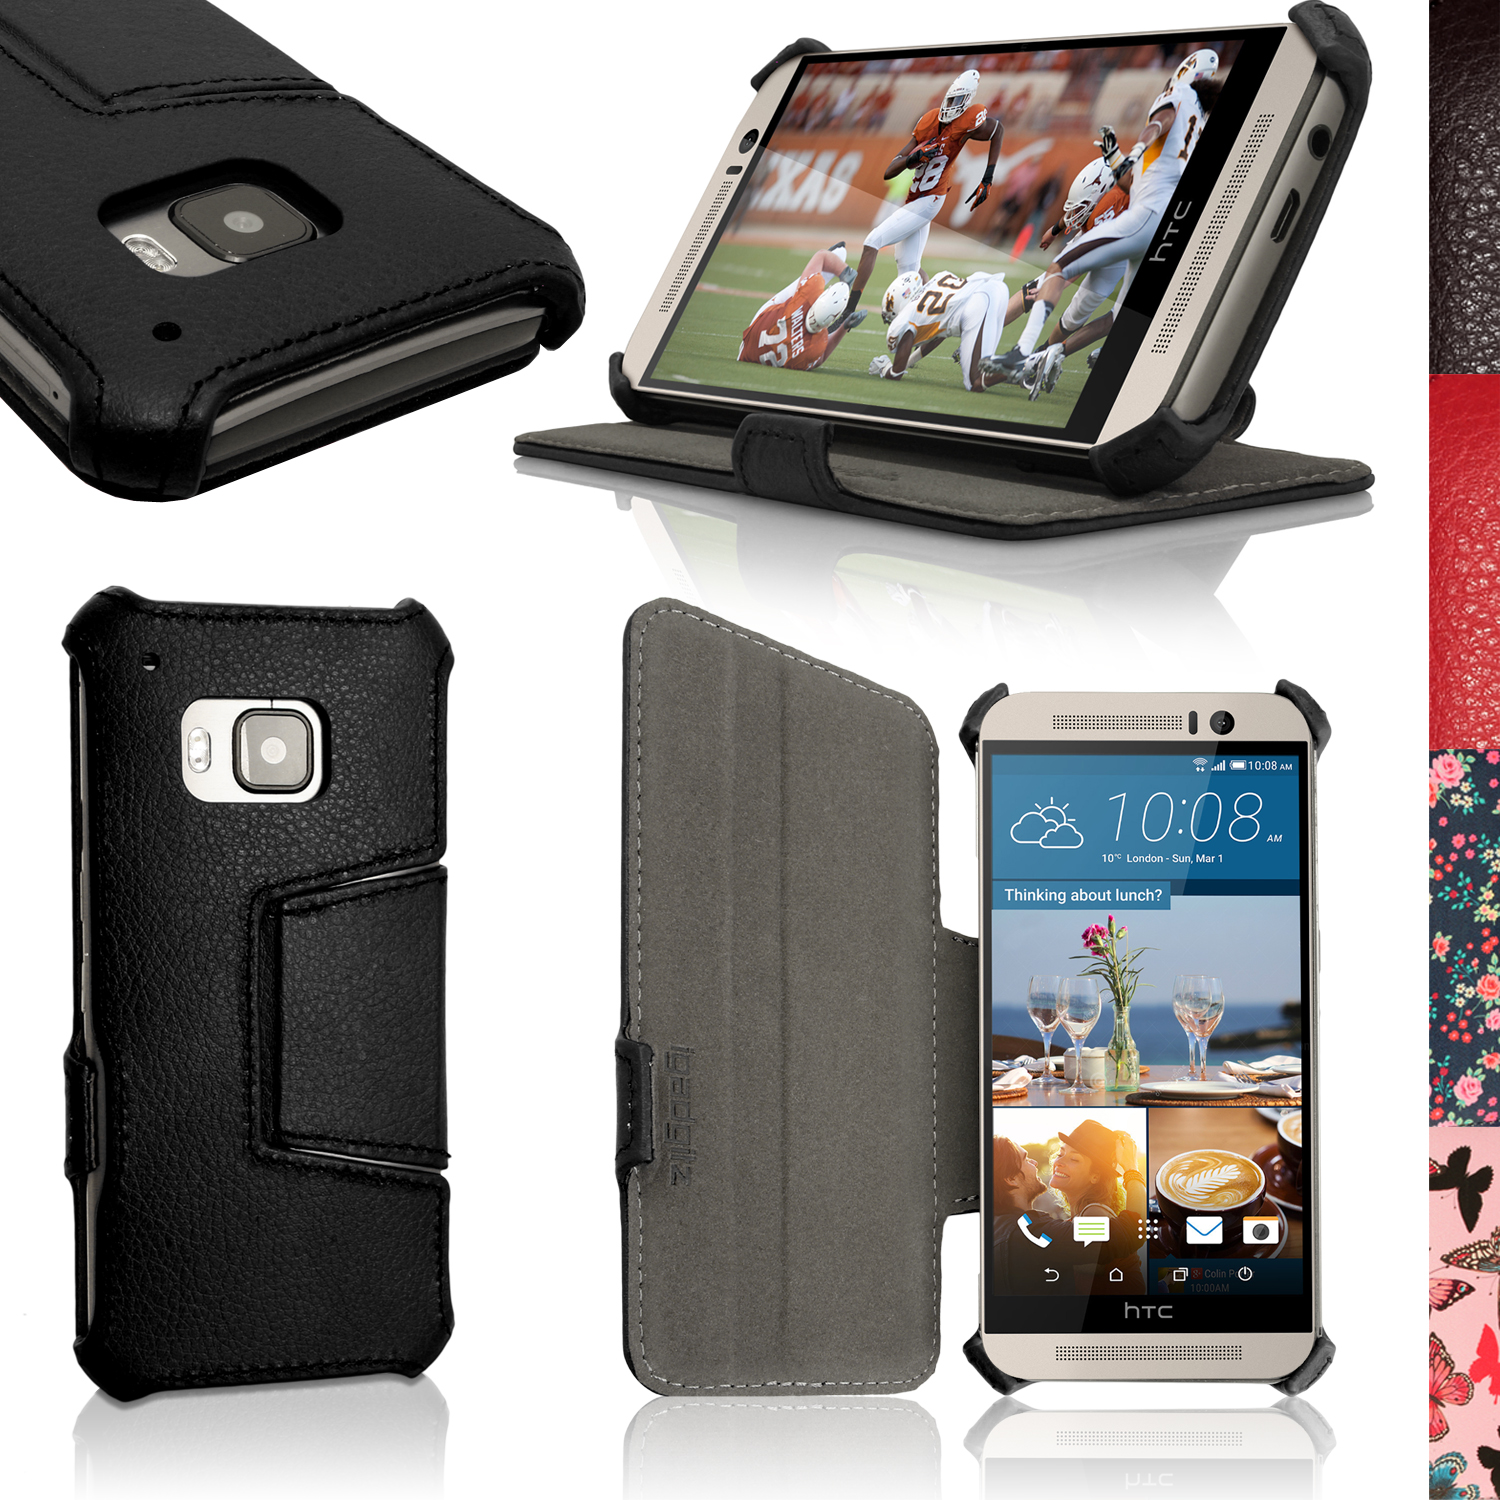 iGadgitz Premium Folio PU Leather Case Cover for HTC One M9 (2015) + Sleep Wake + Viewing Stand + Screen Protector